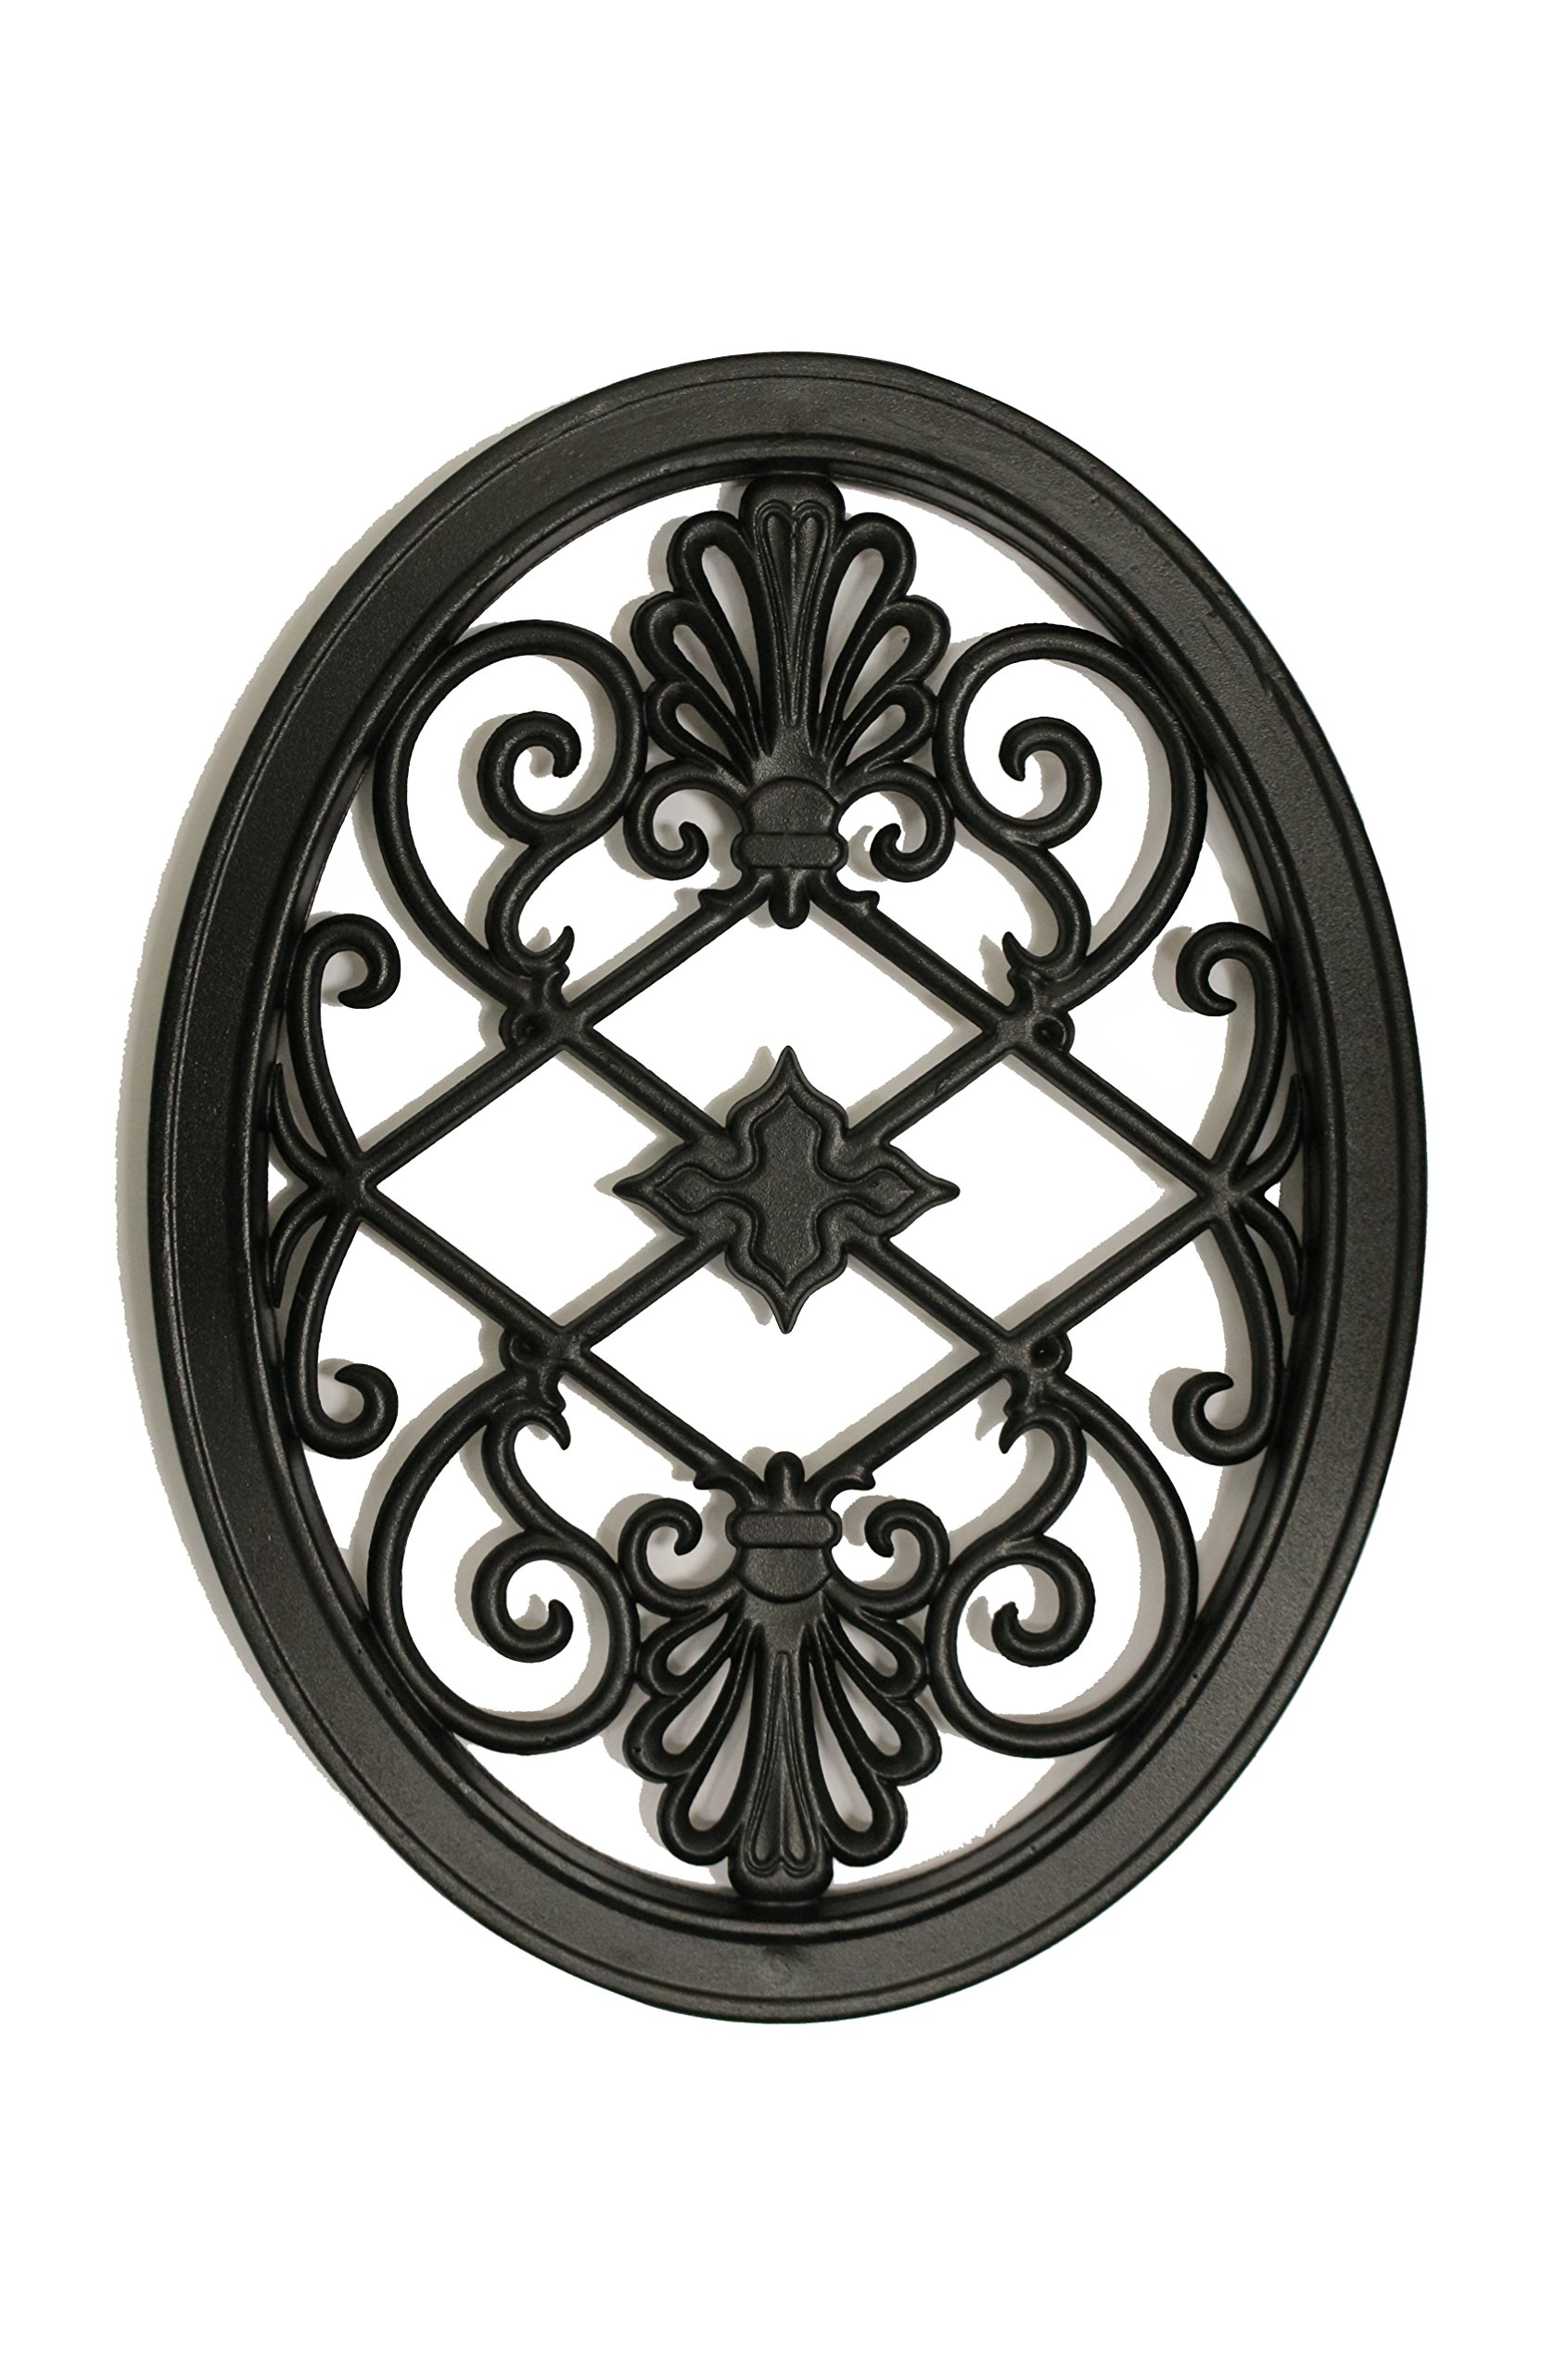 Nuvo Iron OVAL DECORATIVE GATE FENCE INSERT ACW56 Fencing,Fence,Gates,Home